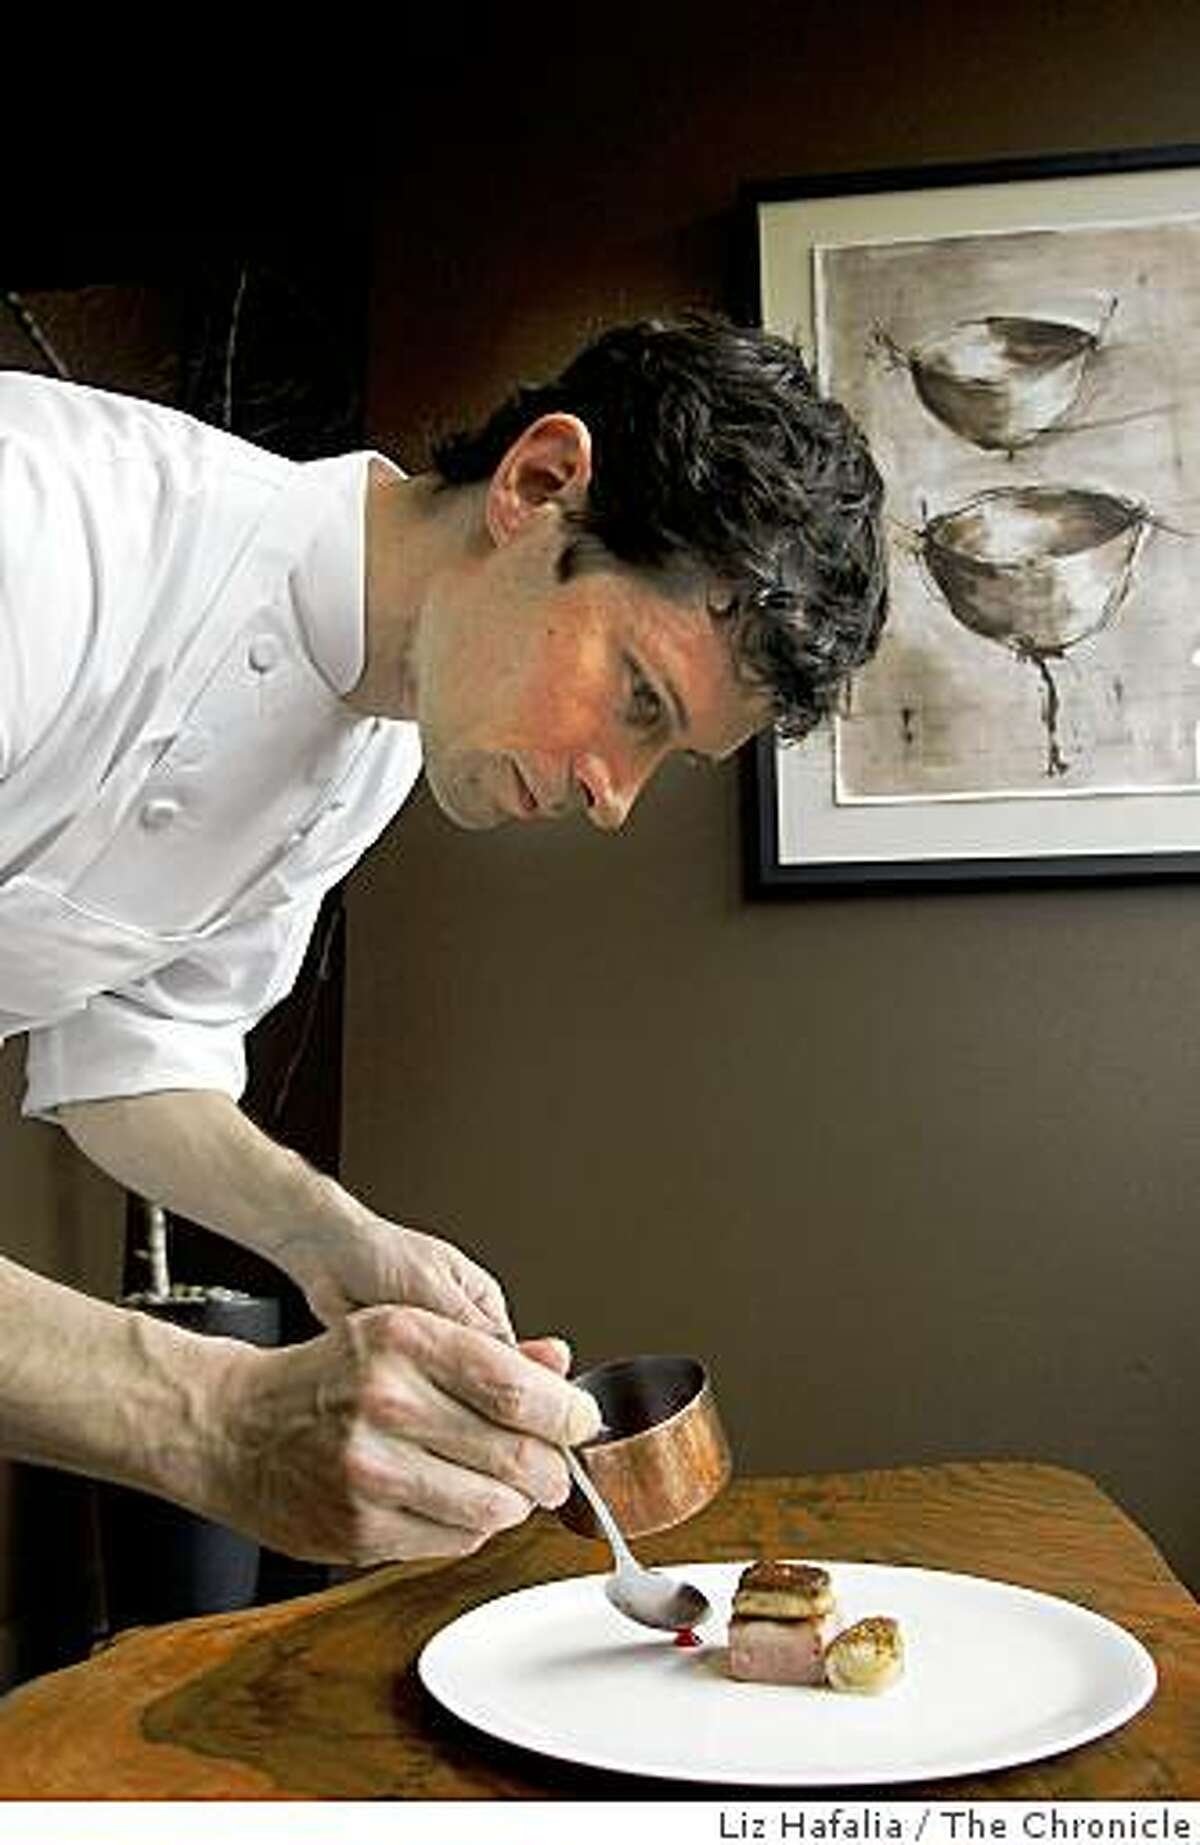 Chef Daniel Patterson of Coi plates his duck breast cooked sous-vide style in foie gras fat, with sauteed foie gras and hibiscus sauce.